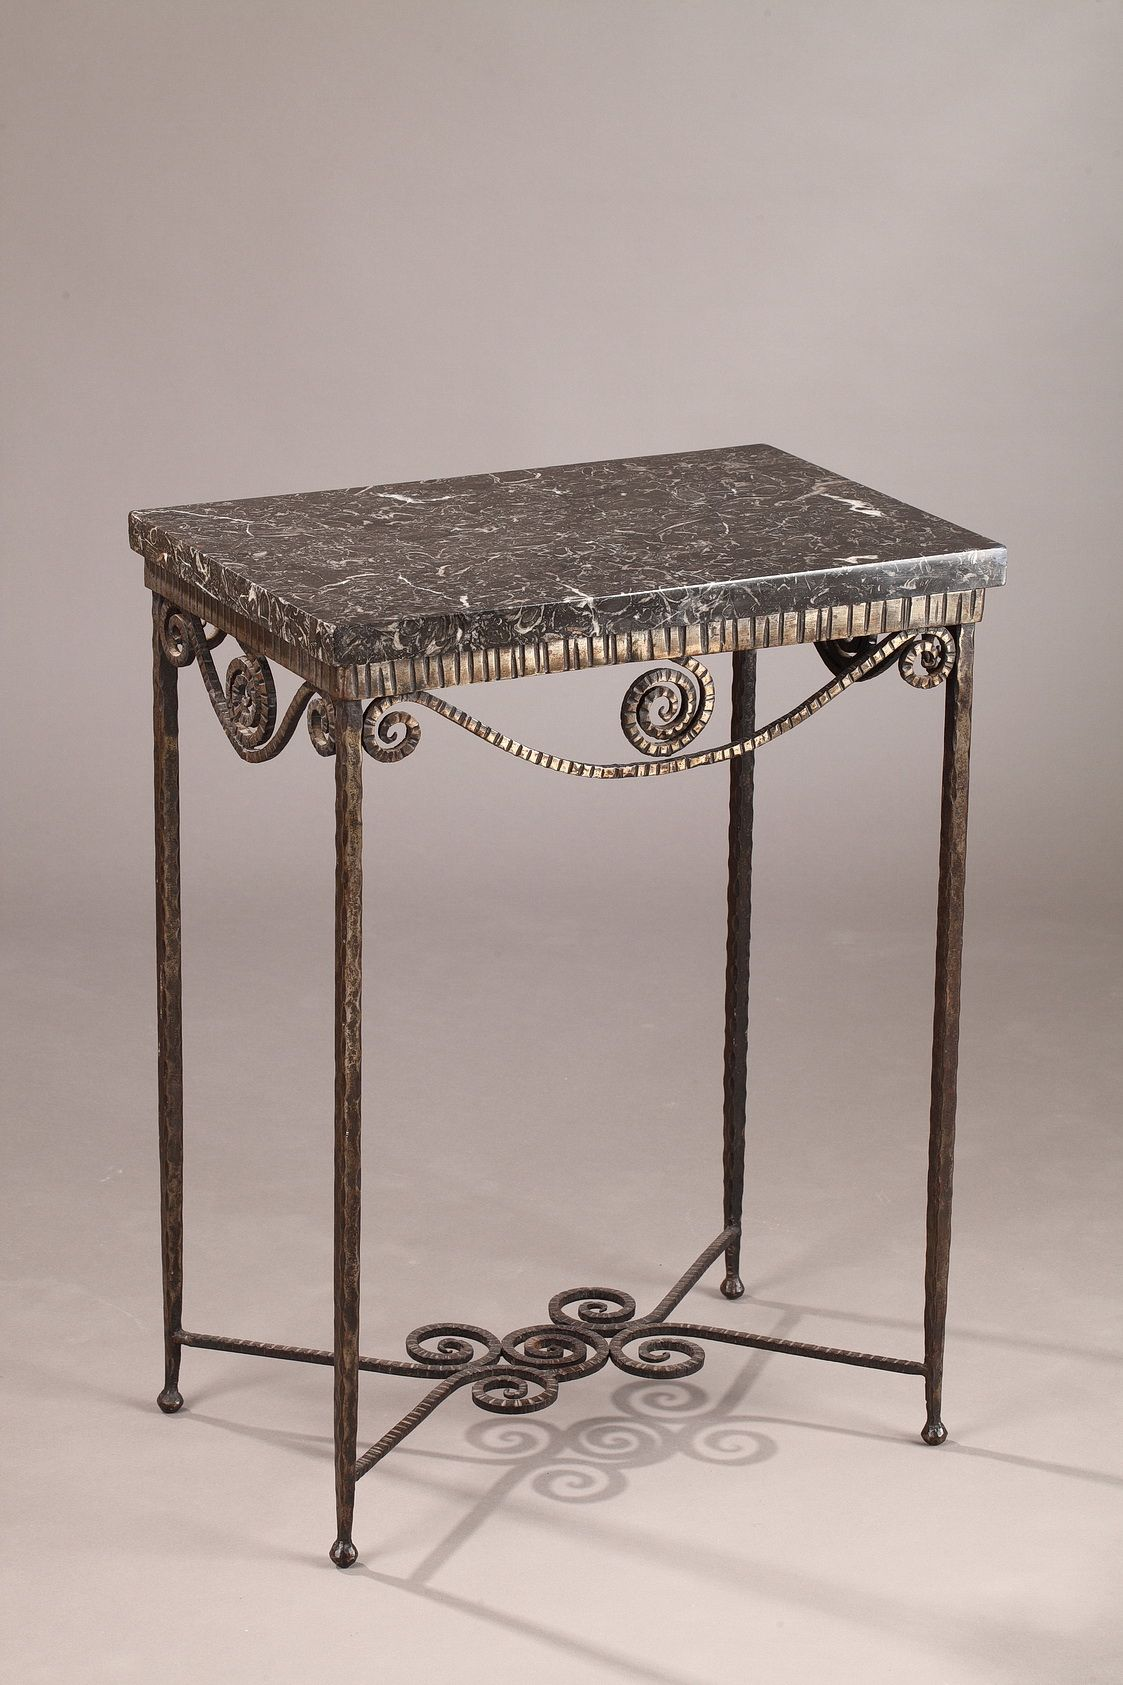 Art deco console table in wrought iron decorated with vertical art deco console table in wrought iron decorated with vertical grooves and spirals the rectangular geotapseo Image collections